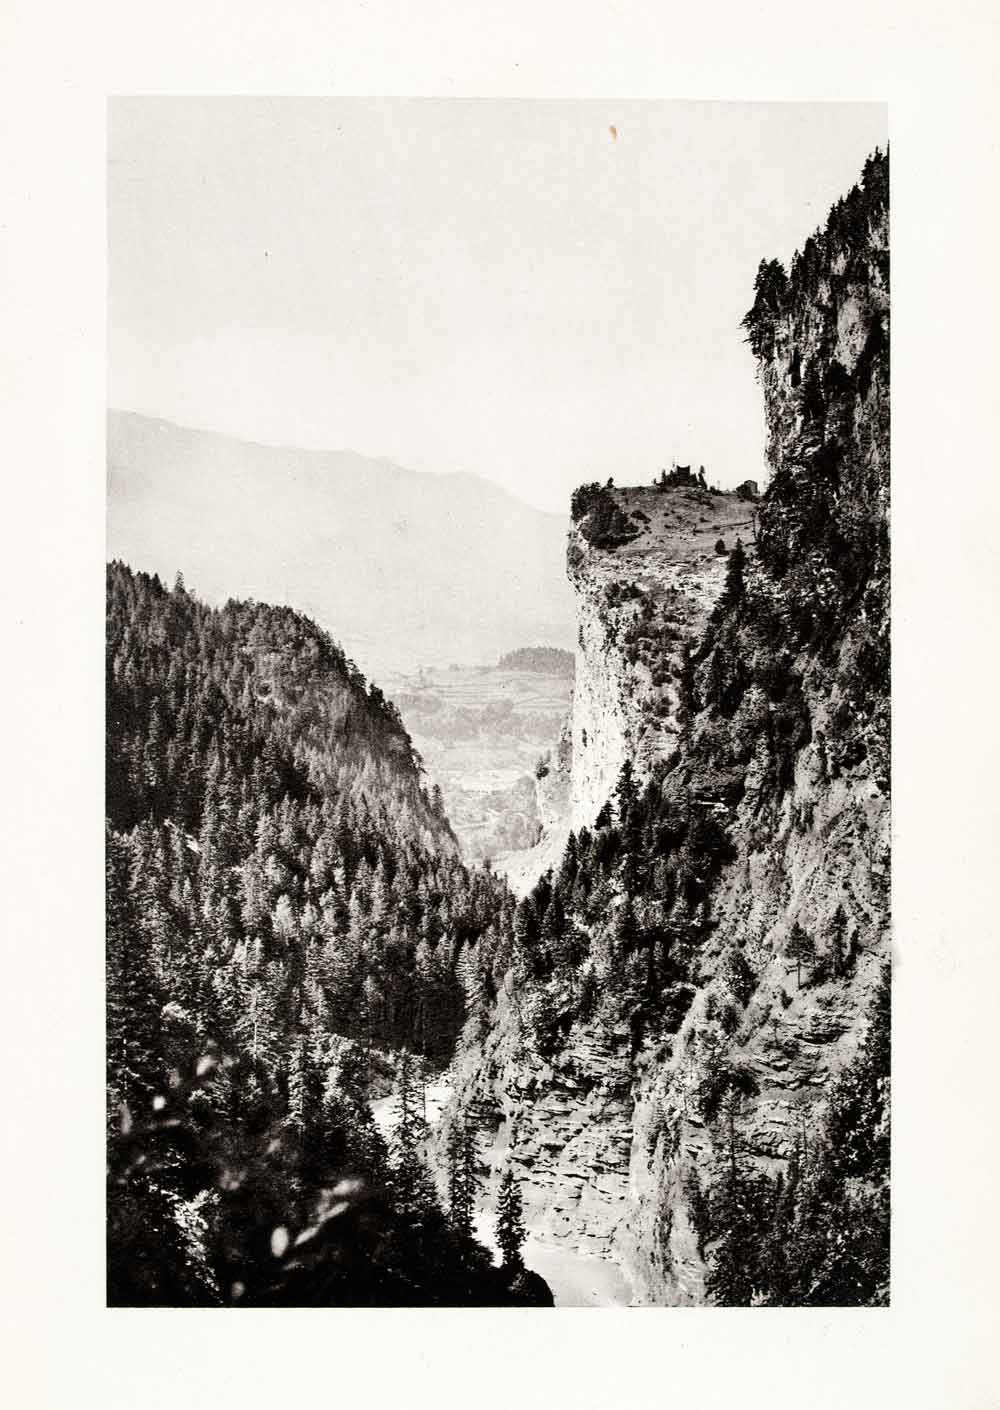 1899 Photogravure Viamala Switzerland Natural History Landscape Historic XGYA5